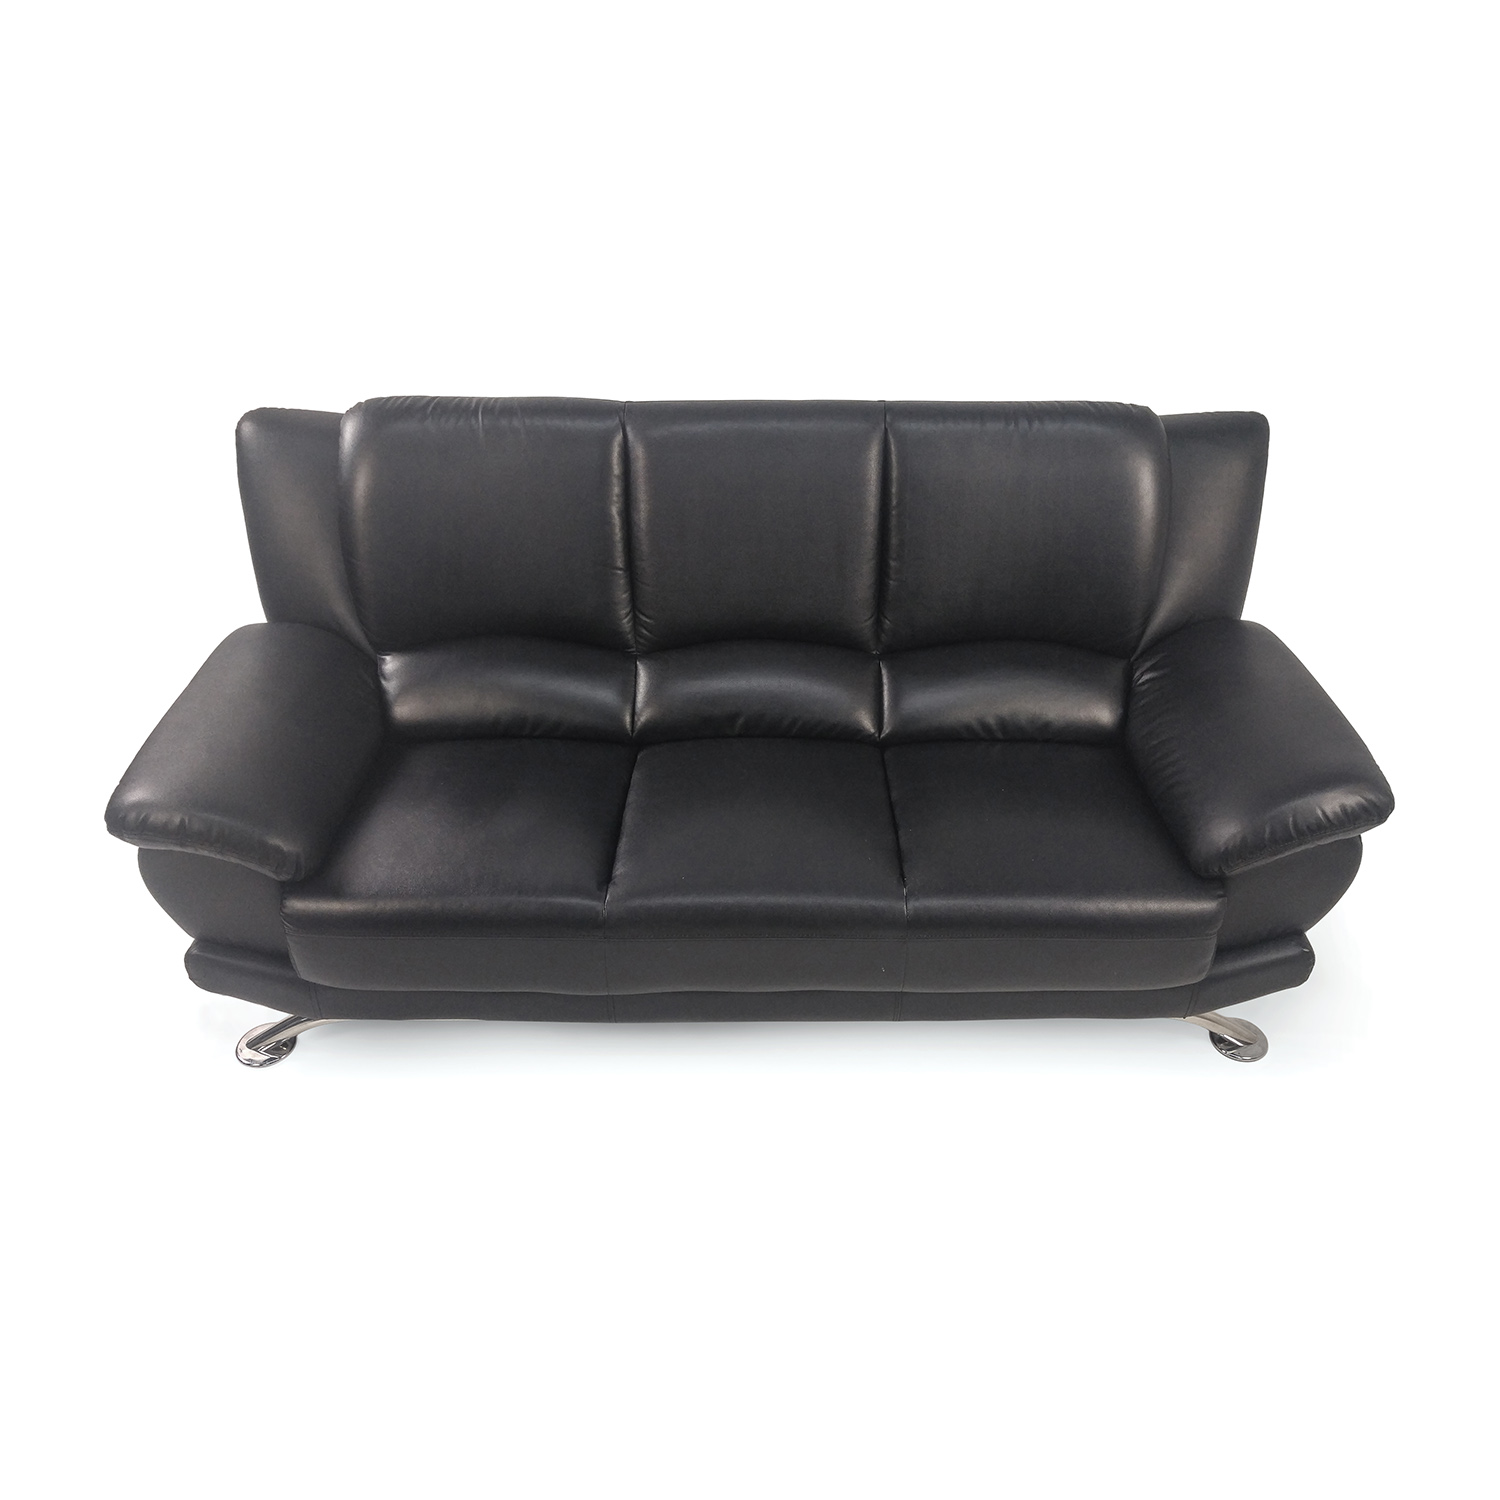 Custom Black Leather Sofa dimensions